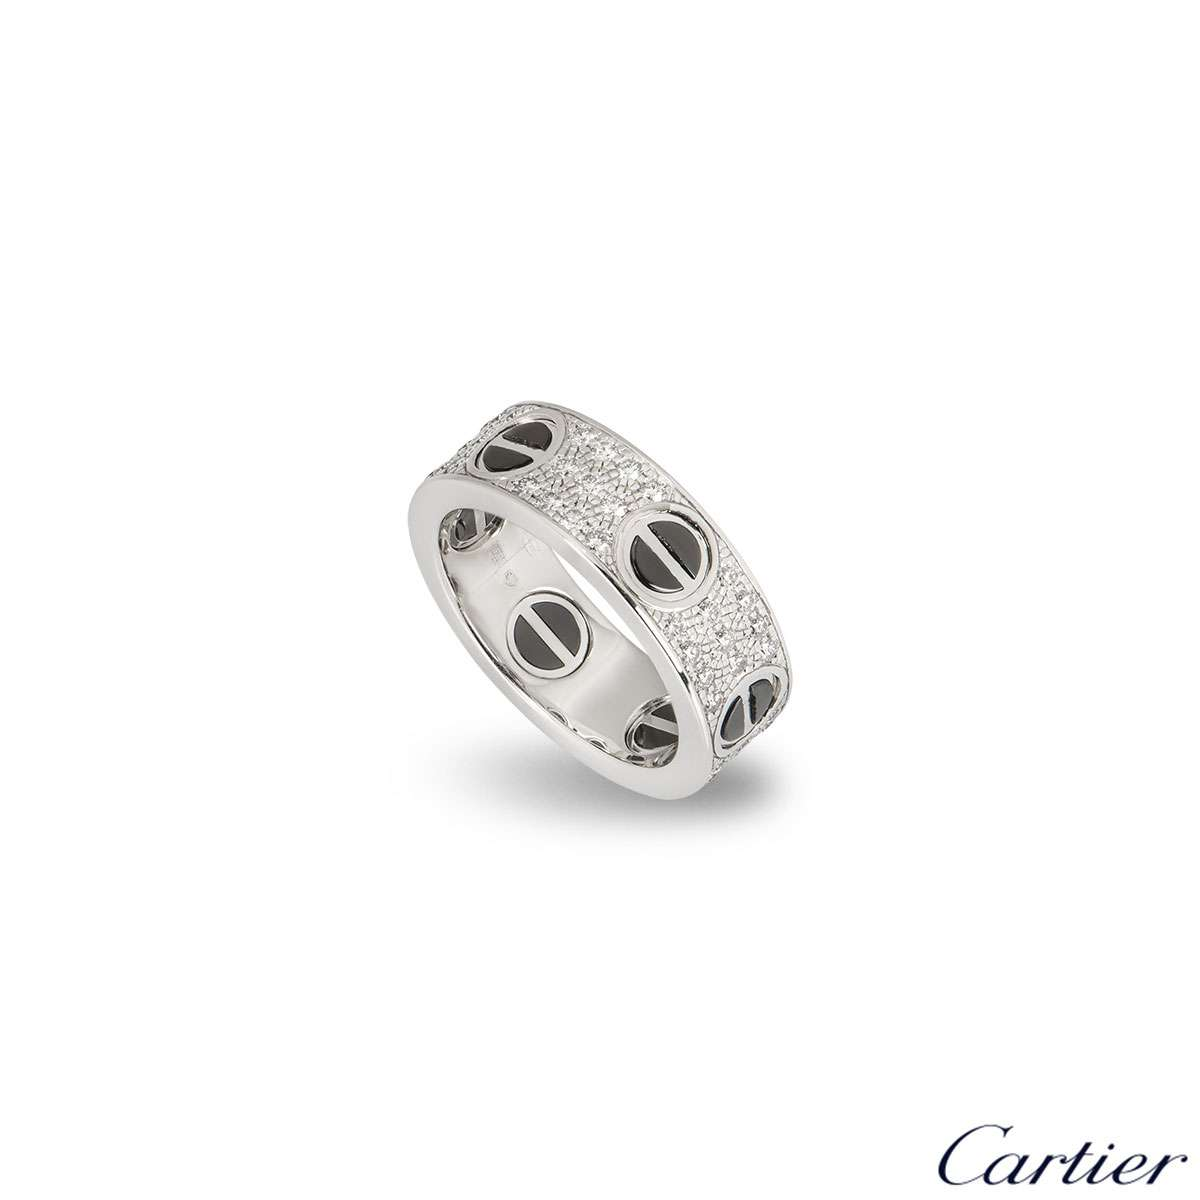 Cartier White Gold Diamond & Ceramic Love Ring Size 49 B4207600